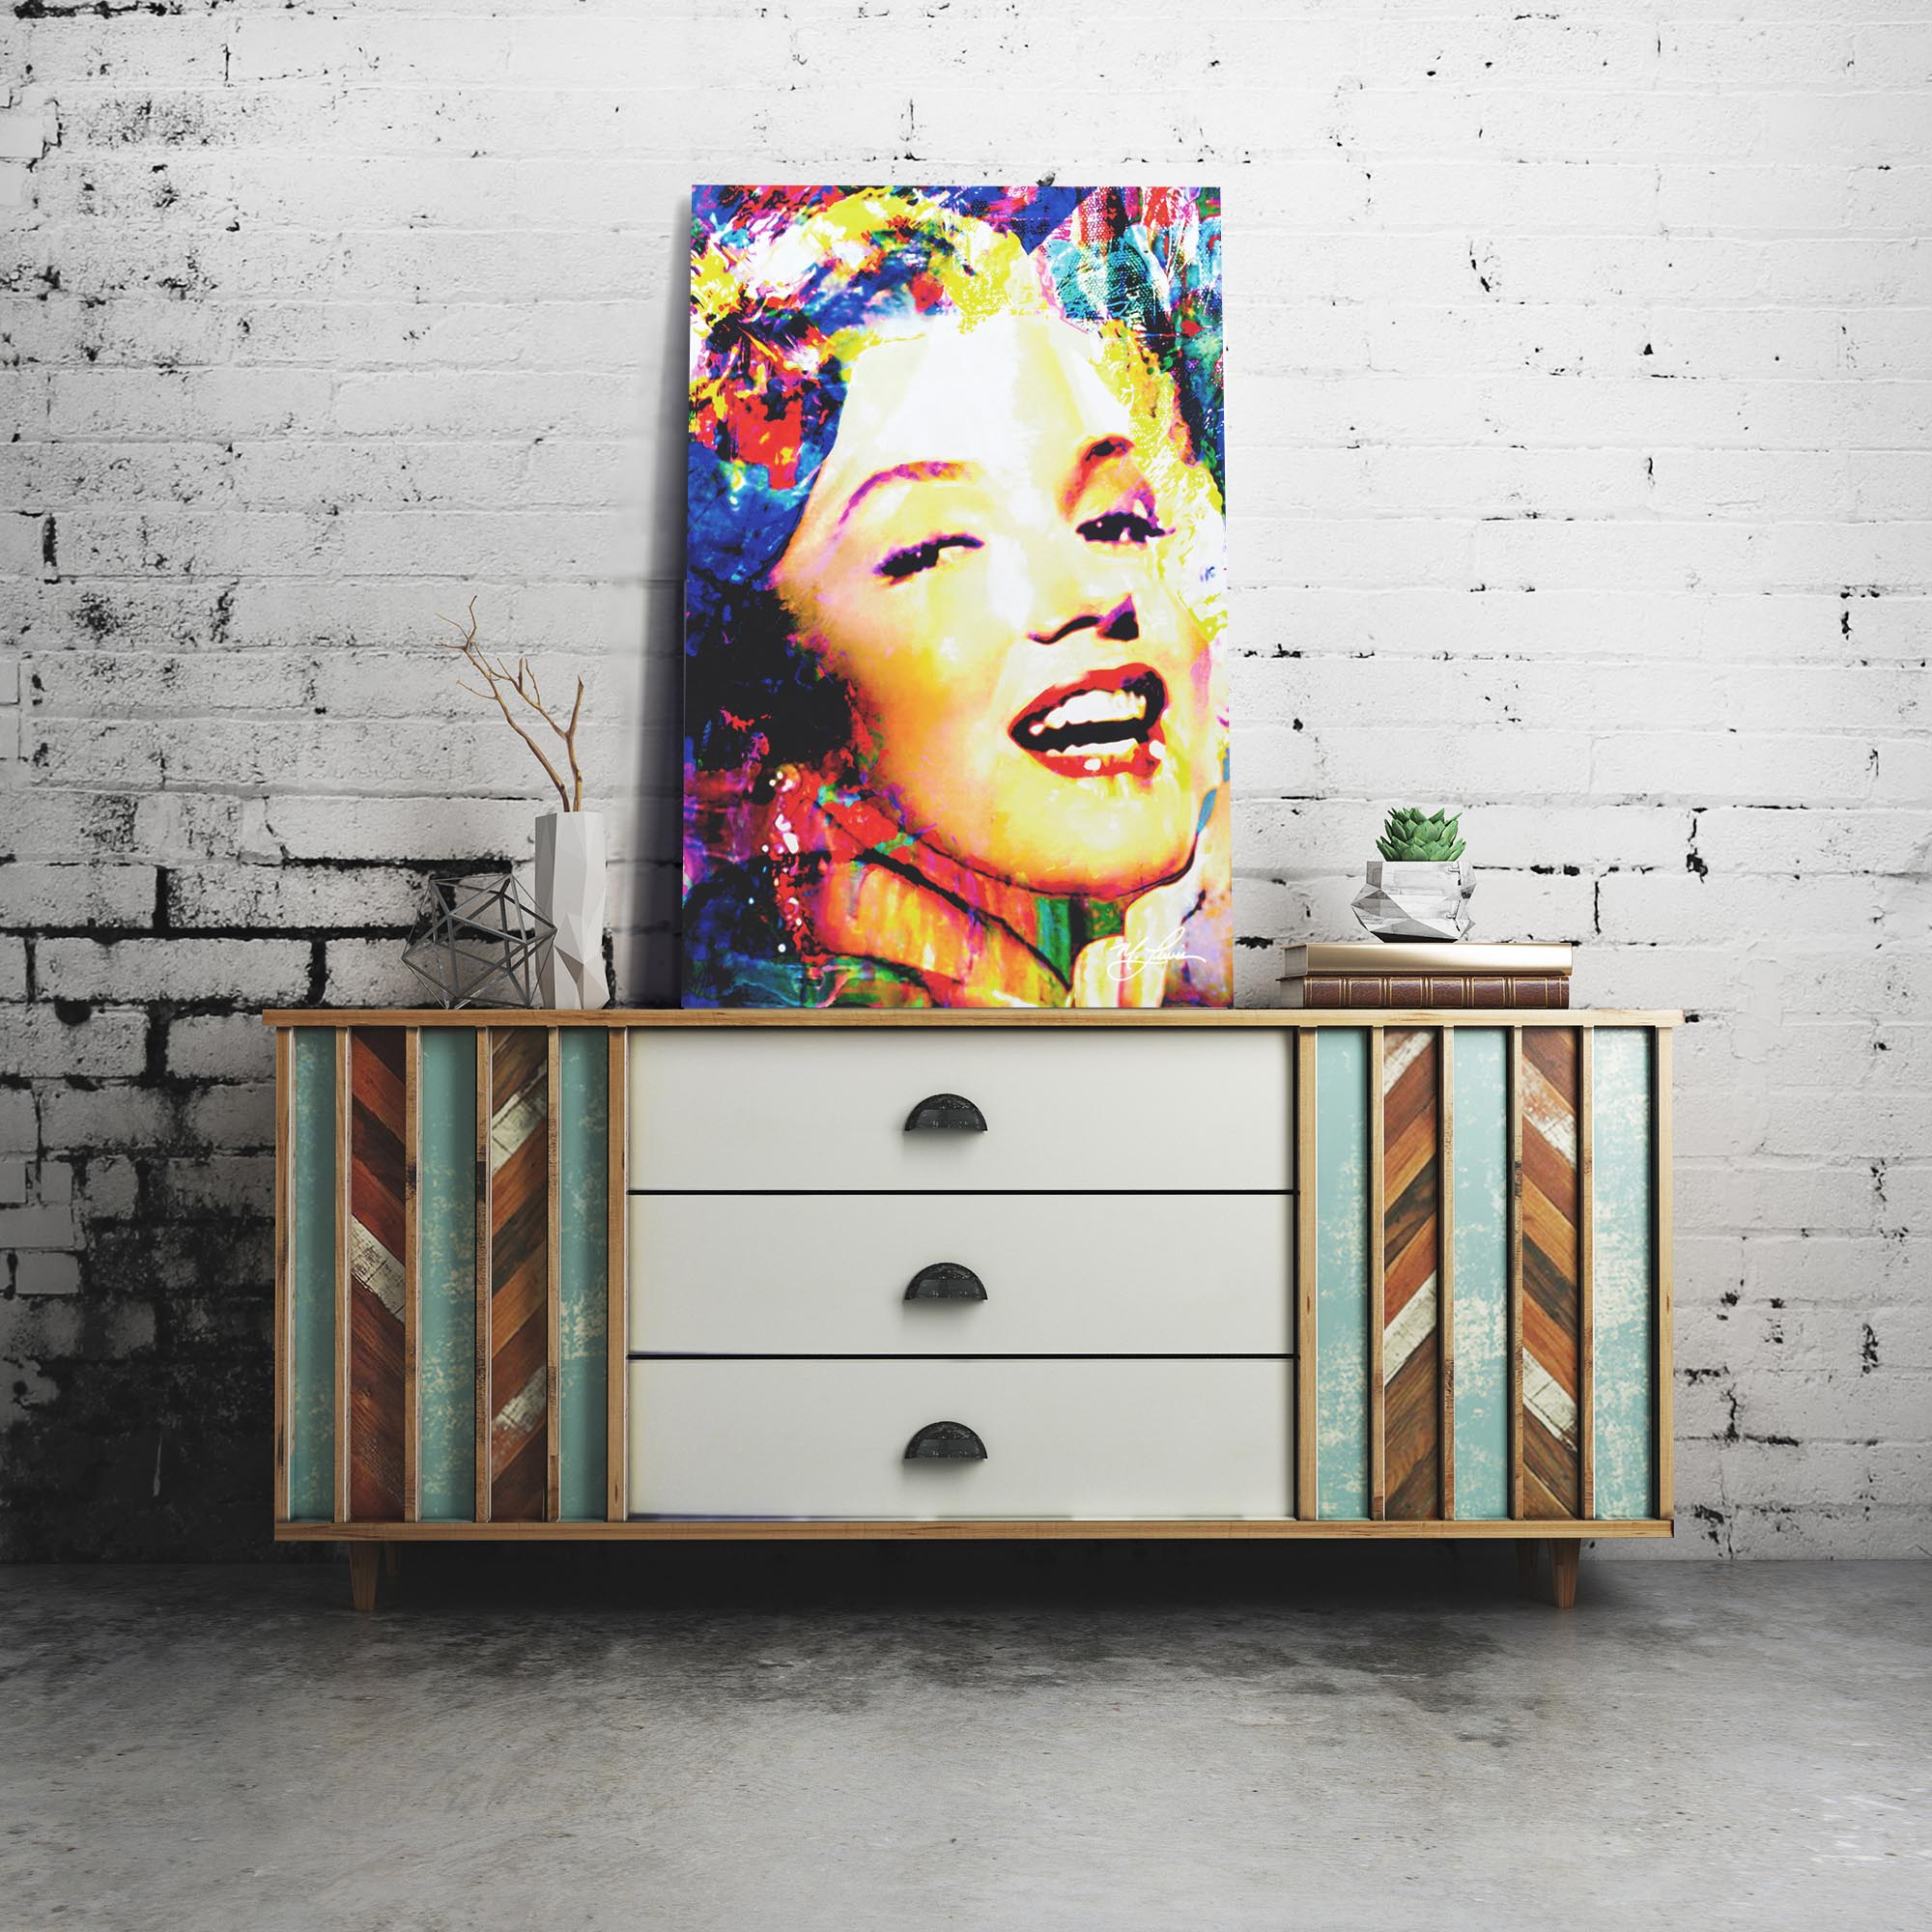 Marilyn Monroe Marilyn Bee 22x32 Metal or Plexiglass Pop Art Portrait - Lifestyle View